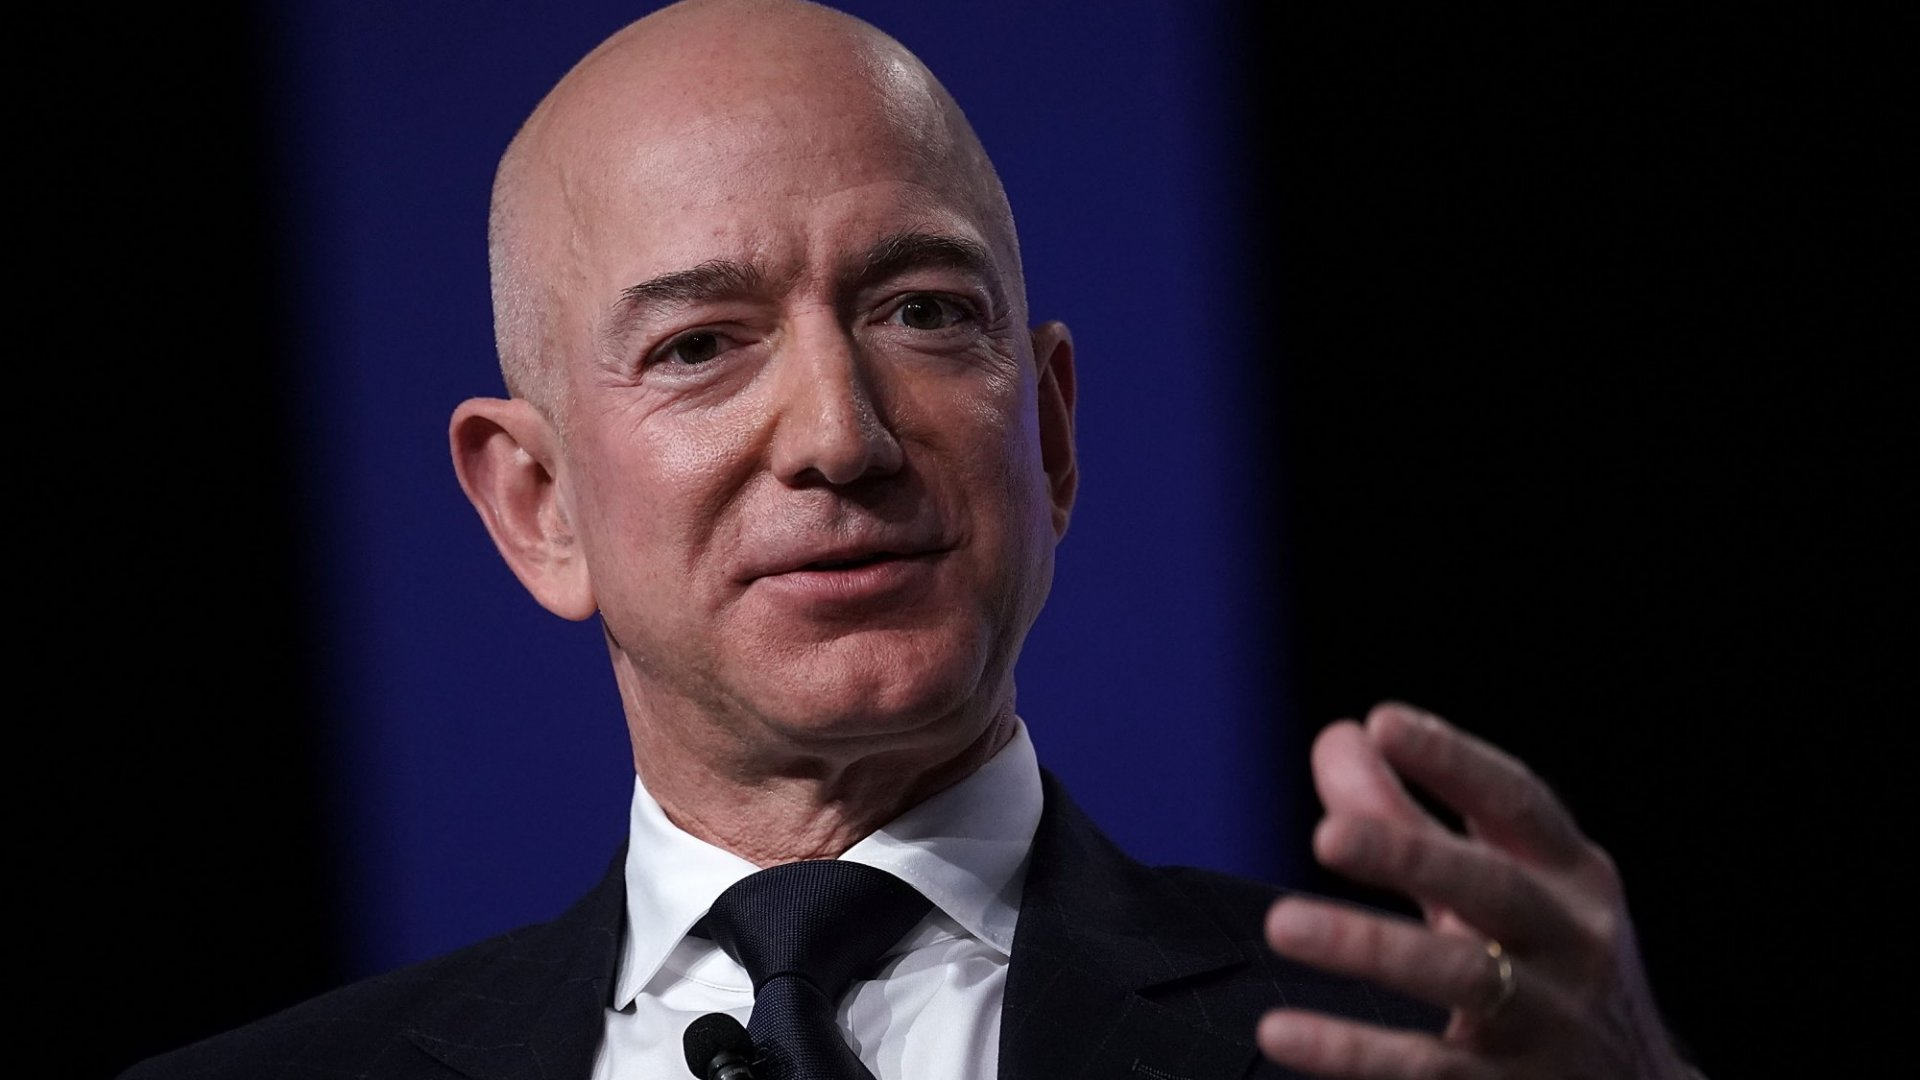 This Is What Jeff Bezos Does When Amazon Gets His Order Wrong